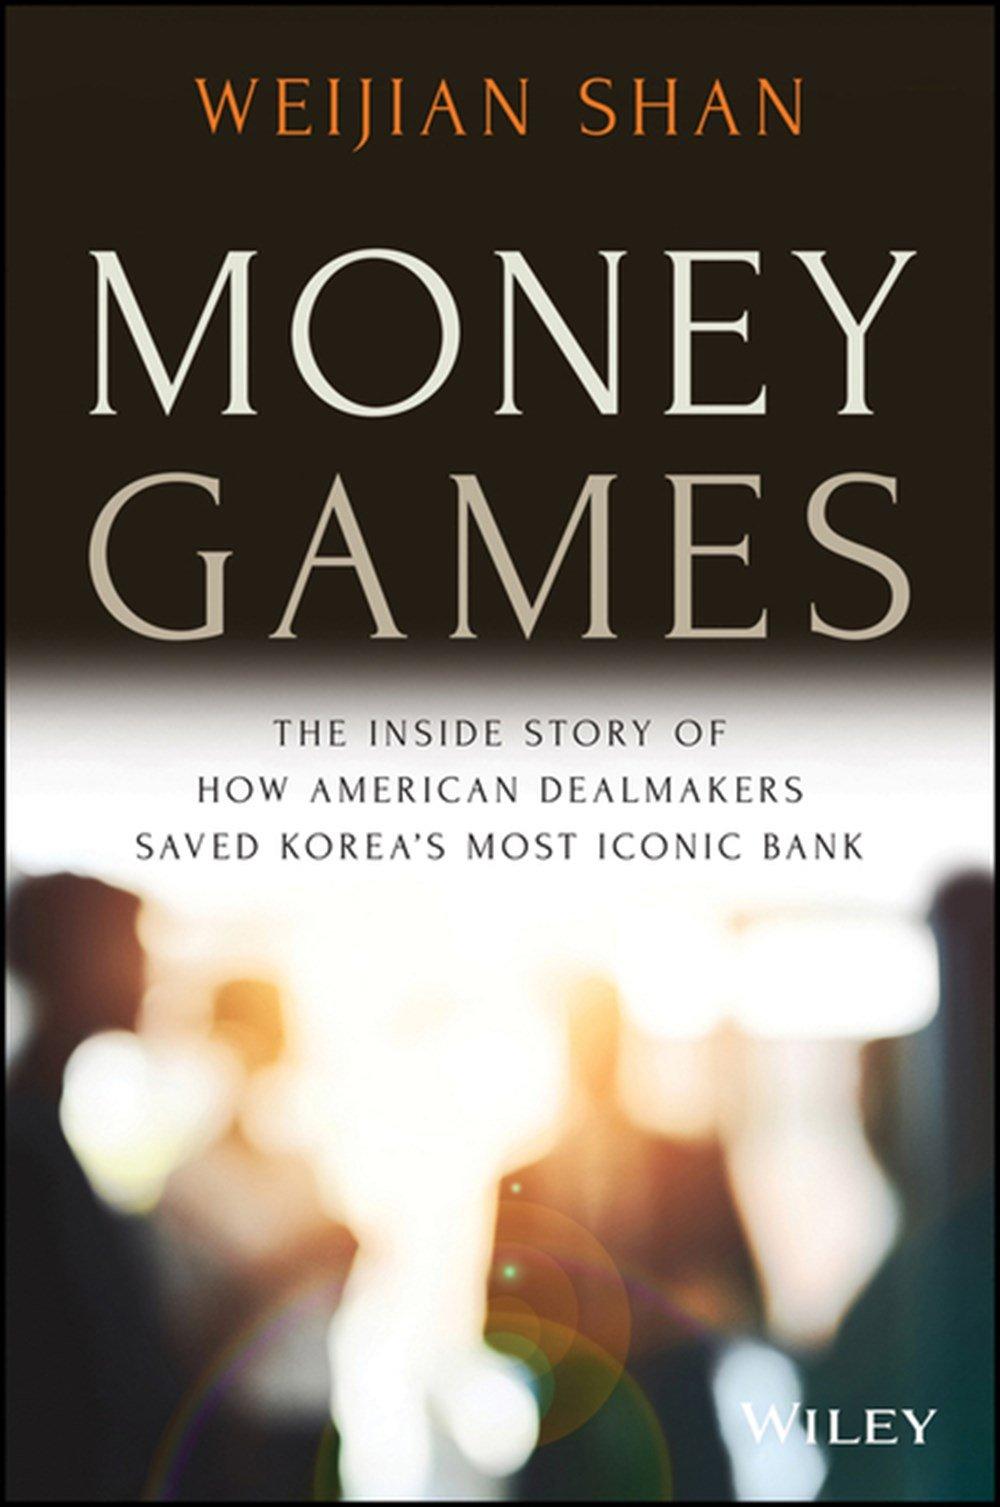 Money Games The Inside Story of How American Dealmakers Saved Korea's Most Iconic Bank